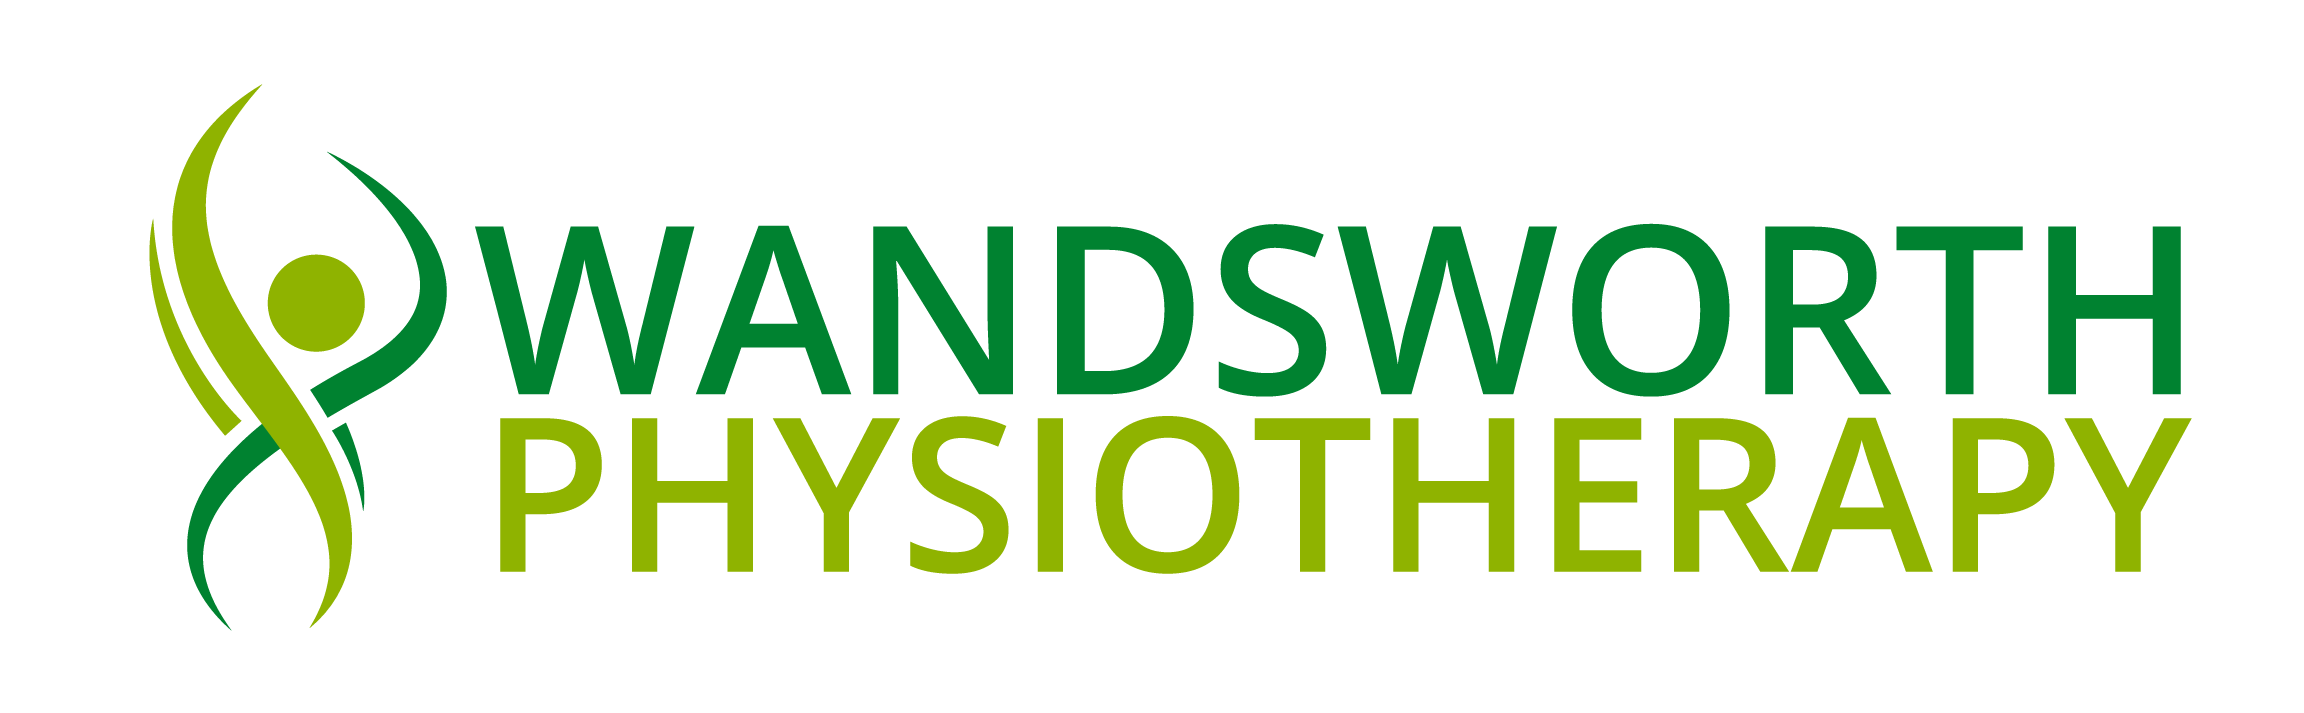 Wandsworth Physiotherapy & Osteopathy